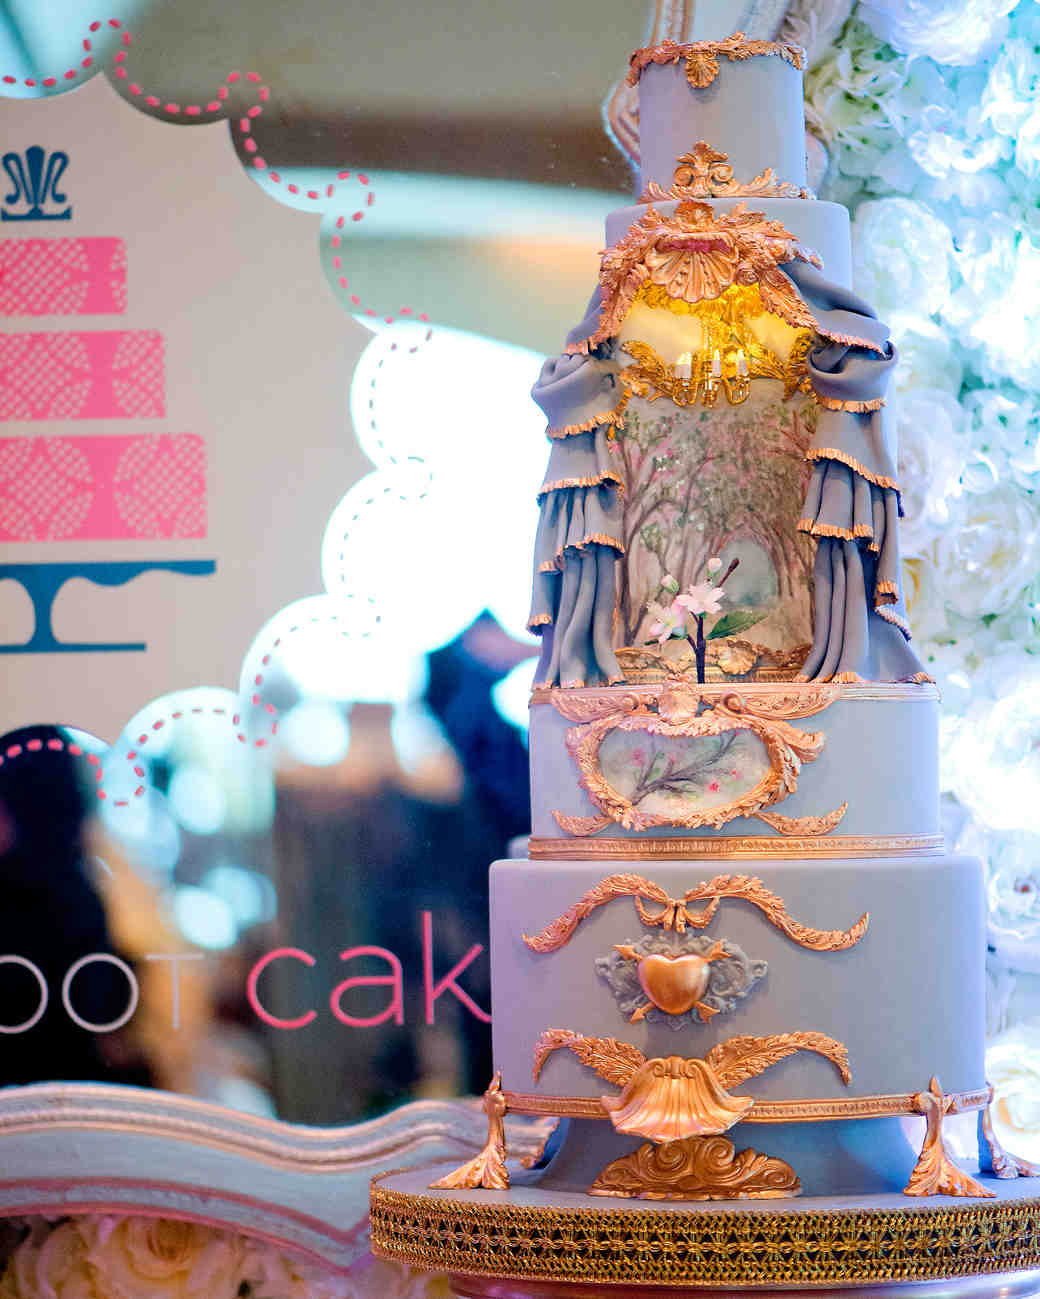 msw-chicago-party15-063-chandelier-cake-0315.jpg